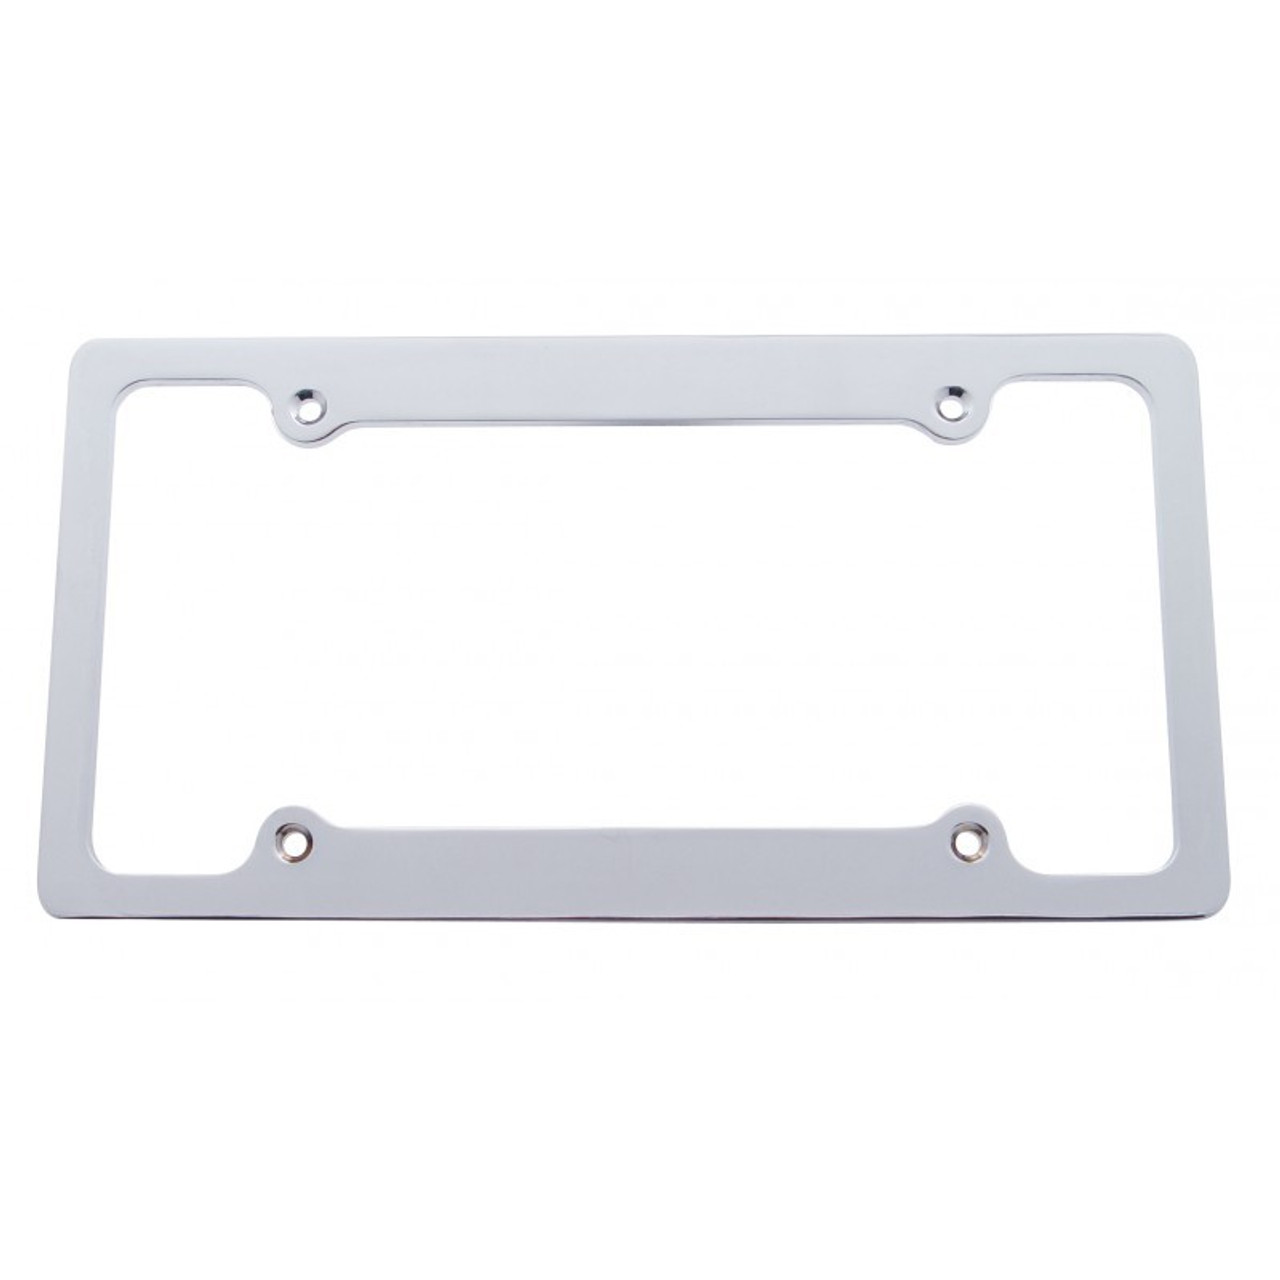 Solid Billet Brushed Aluminum 4-hole License Plate Frame - I-5 ...